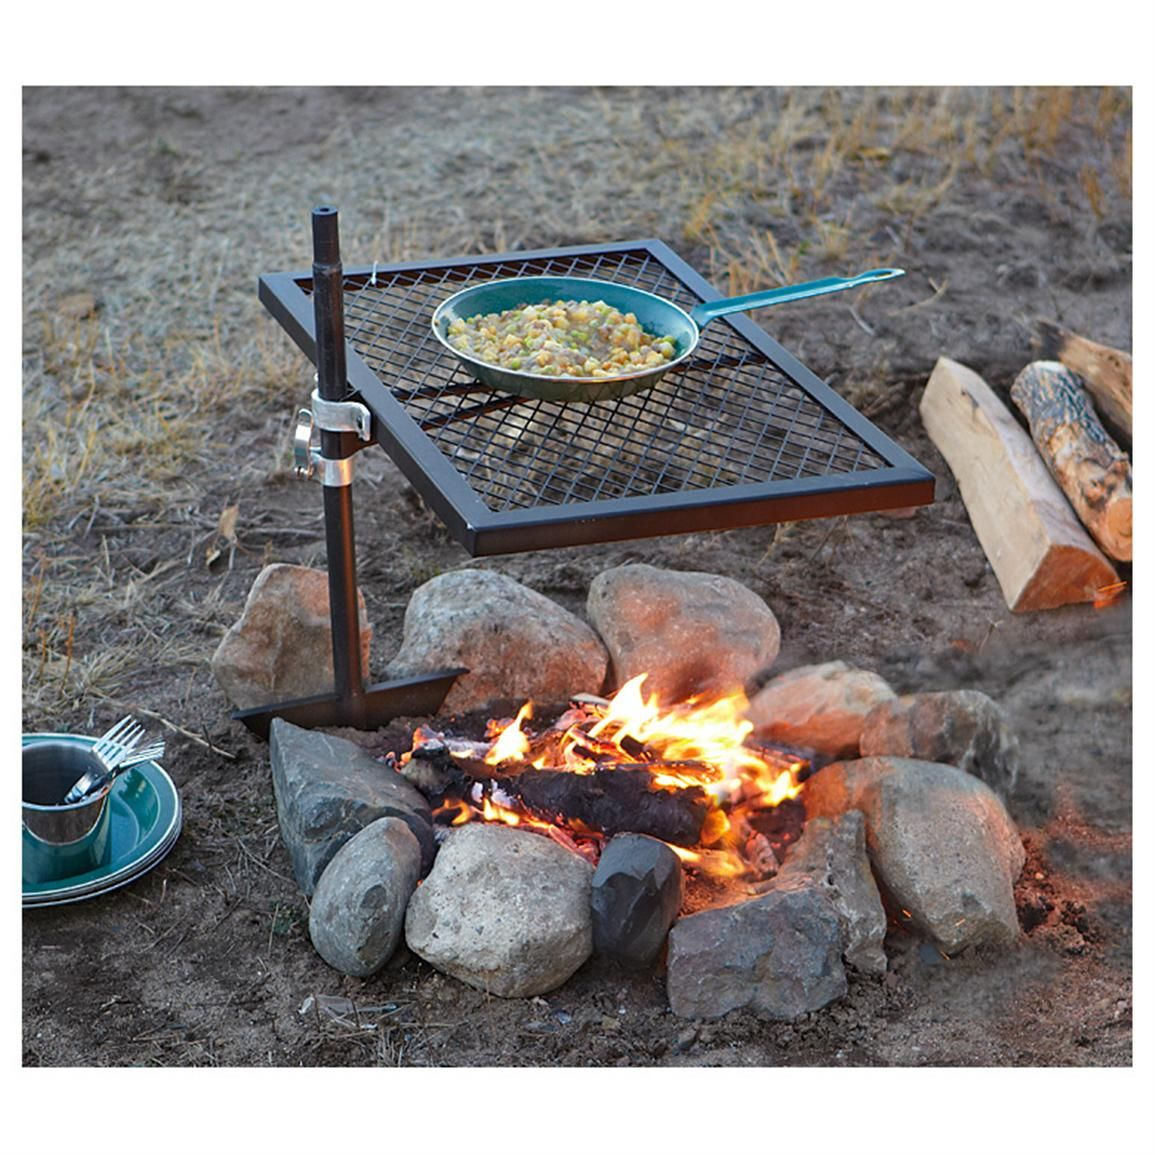 Guide Gear® Swivel Fire Pit Grill $25 - Guide Gear® Swivel Fire Pit Grill $25 Camping Stuff Pinterest